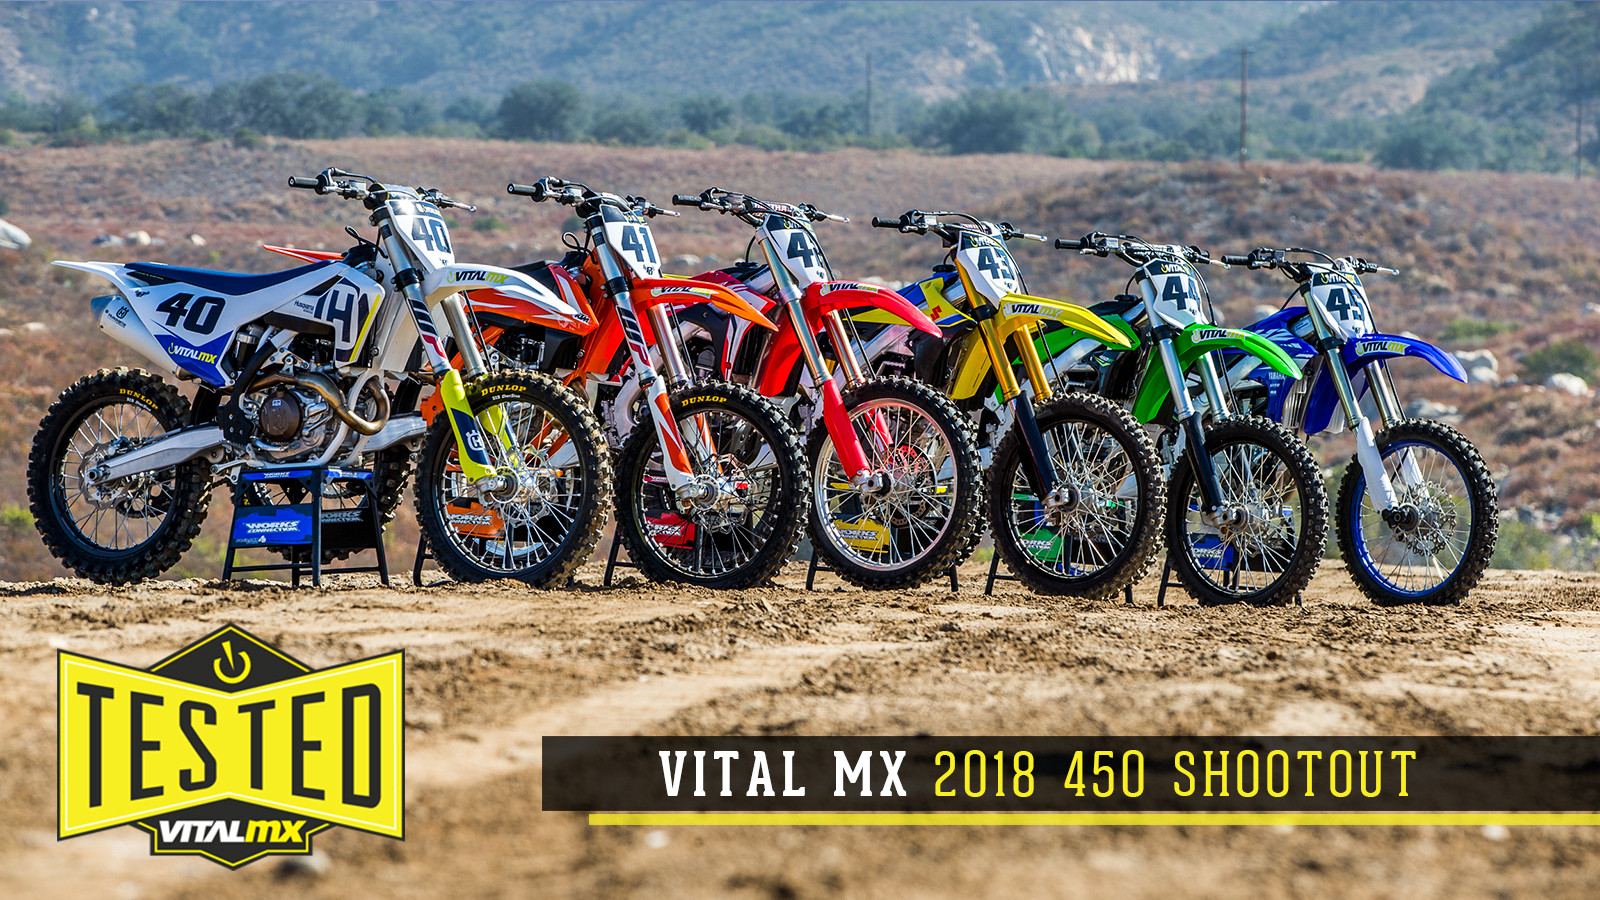 2018 Vital MX 450 Shootout